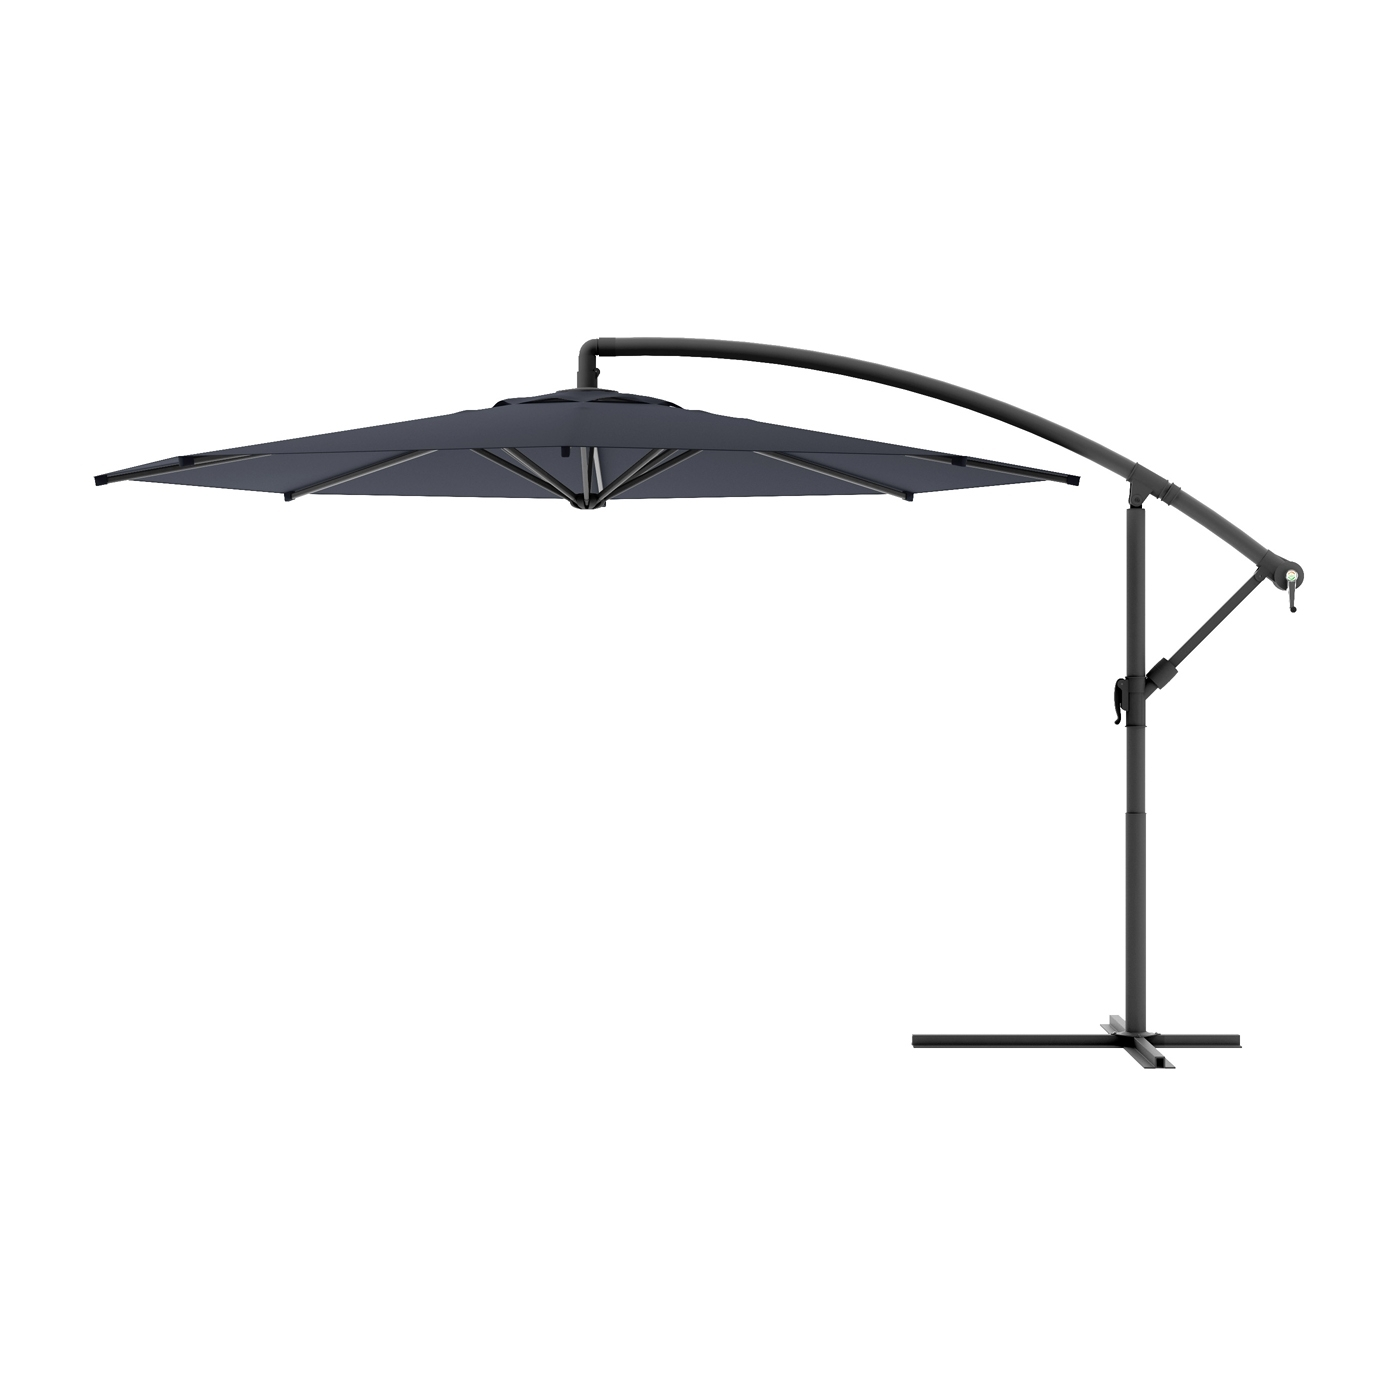 Lowes Offset Patio Umbrellas With Regard To Famous Corliving Ppu 4 Cantilever Patio Umbrella (View 8 of 20)